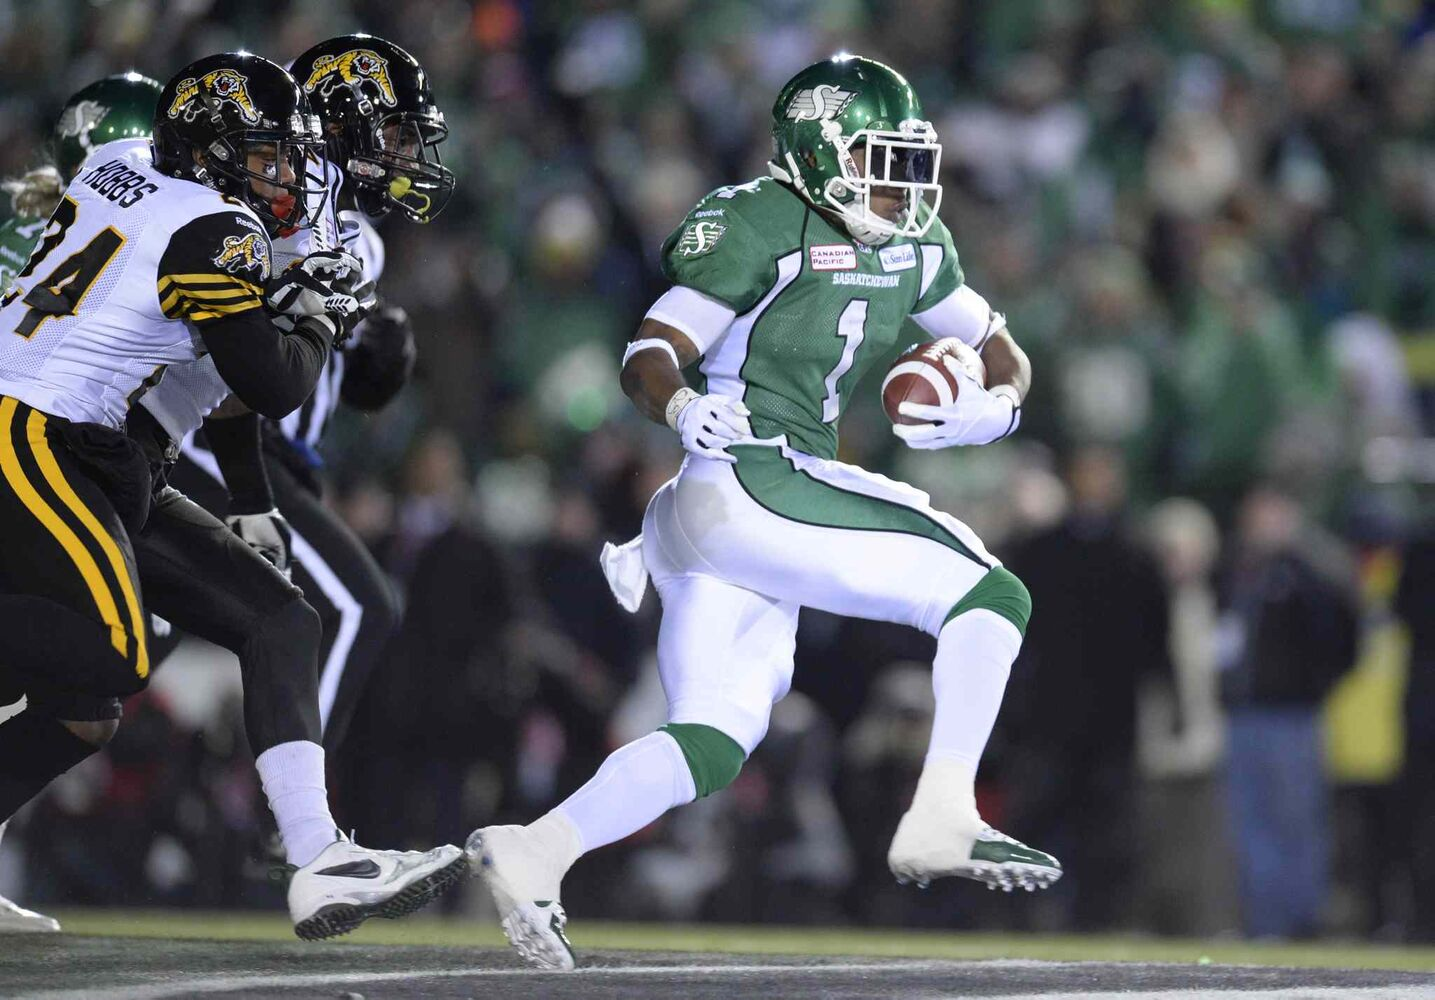 Saskatchewan Roughriders runningback Kory Sheets runs away from Hamilton Tiger-Cats players during the first quarter.